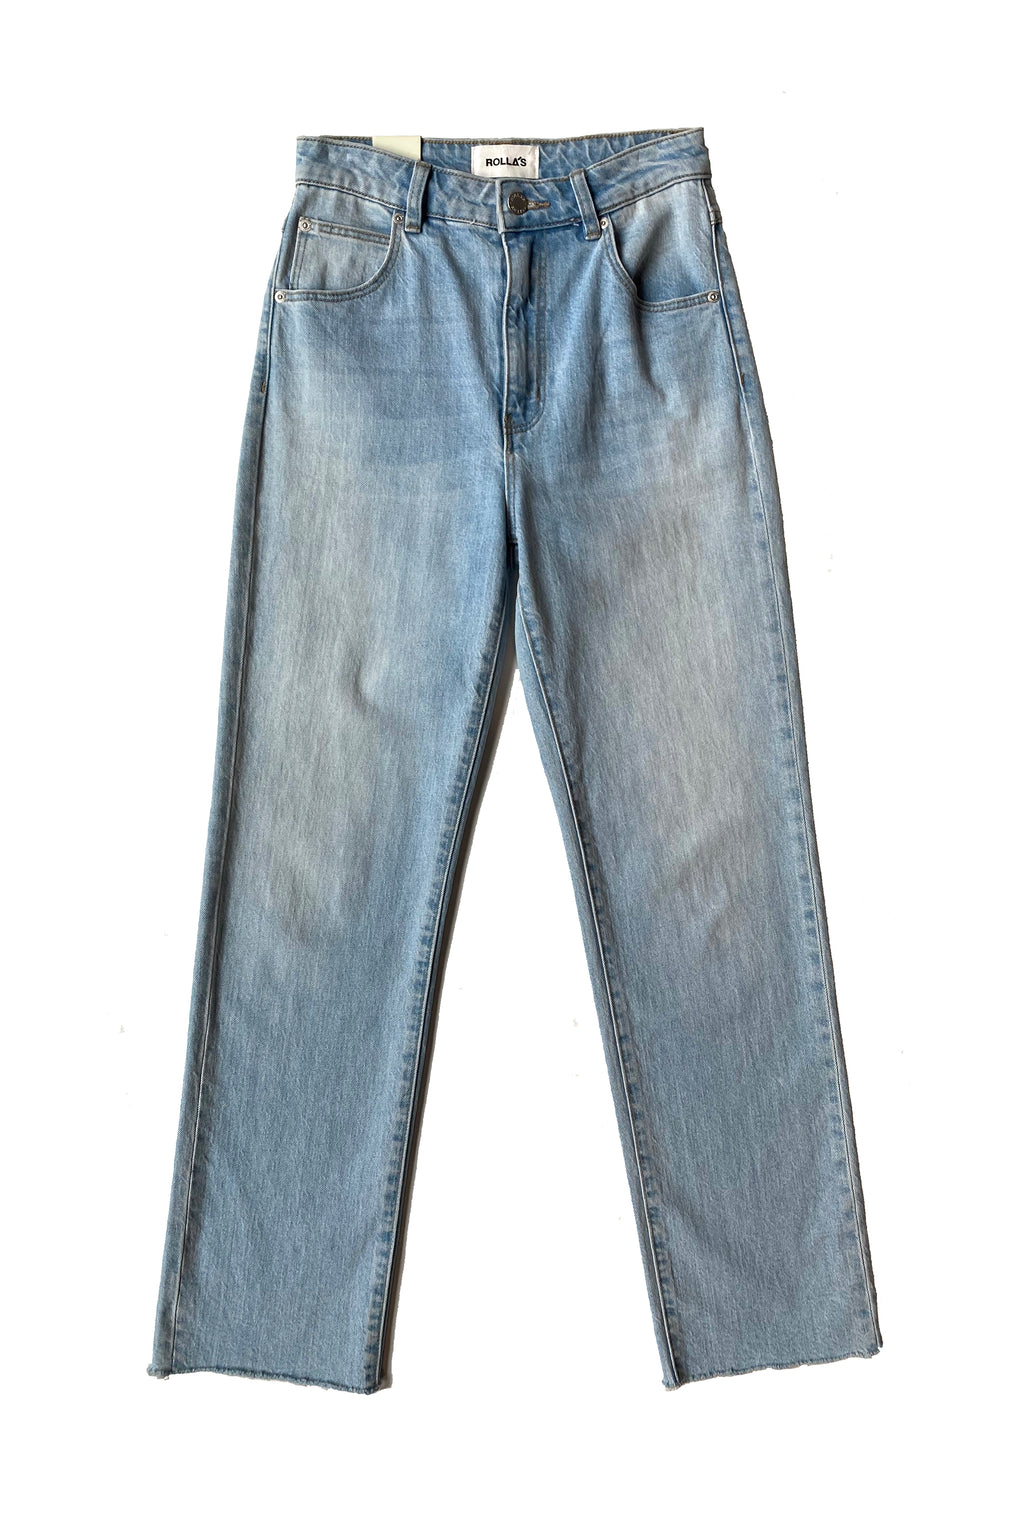 ROLLAS Original Straight Jean in Comfort Sky